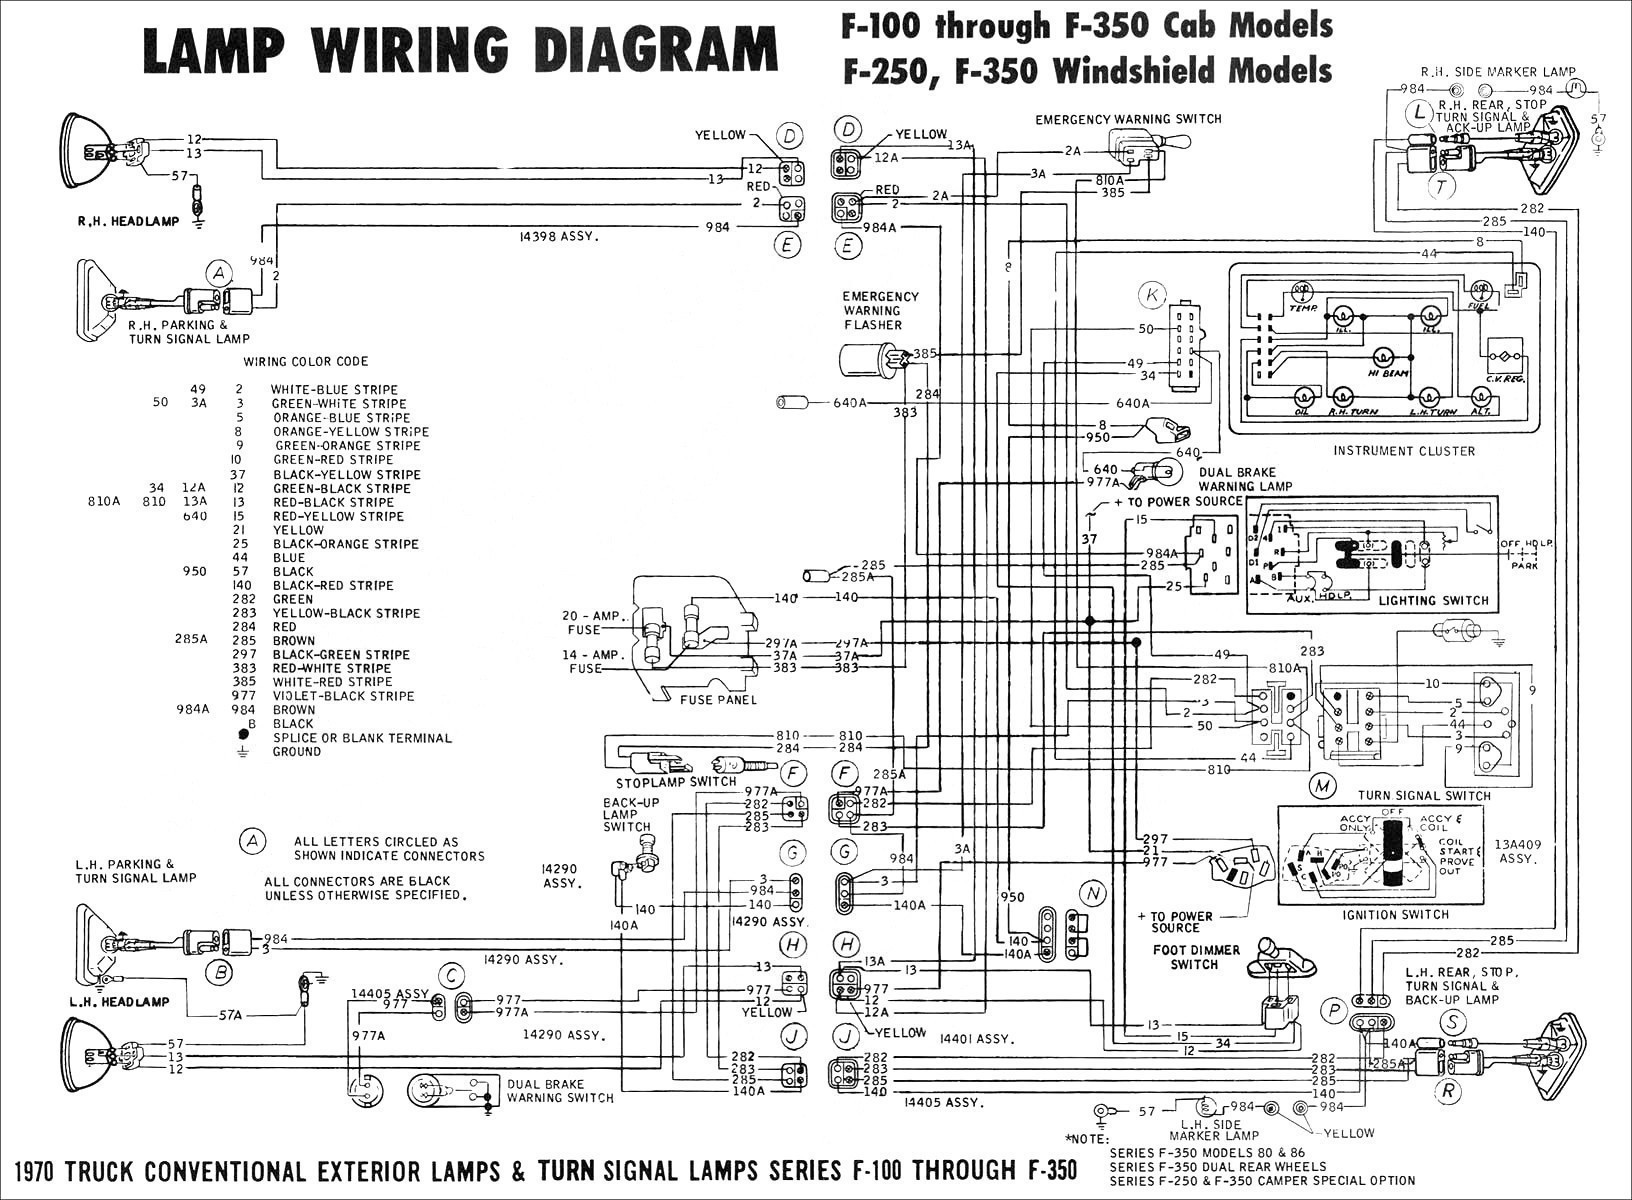 2001 Audi A4 Wiring Diagram - Wiring Diagram Replace just-process -  just-process.miramontiseo.it | Audi B7 Wiring Diagram |  | just-process.miramontiseo.it